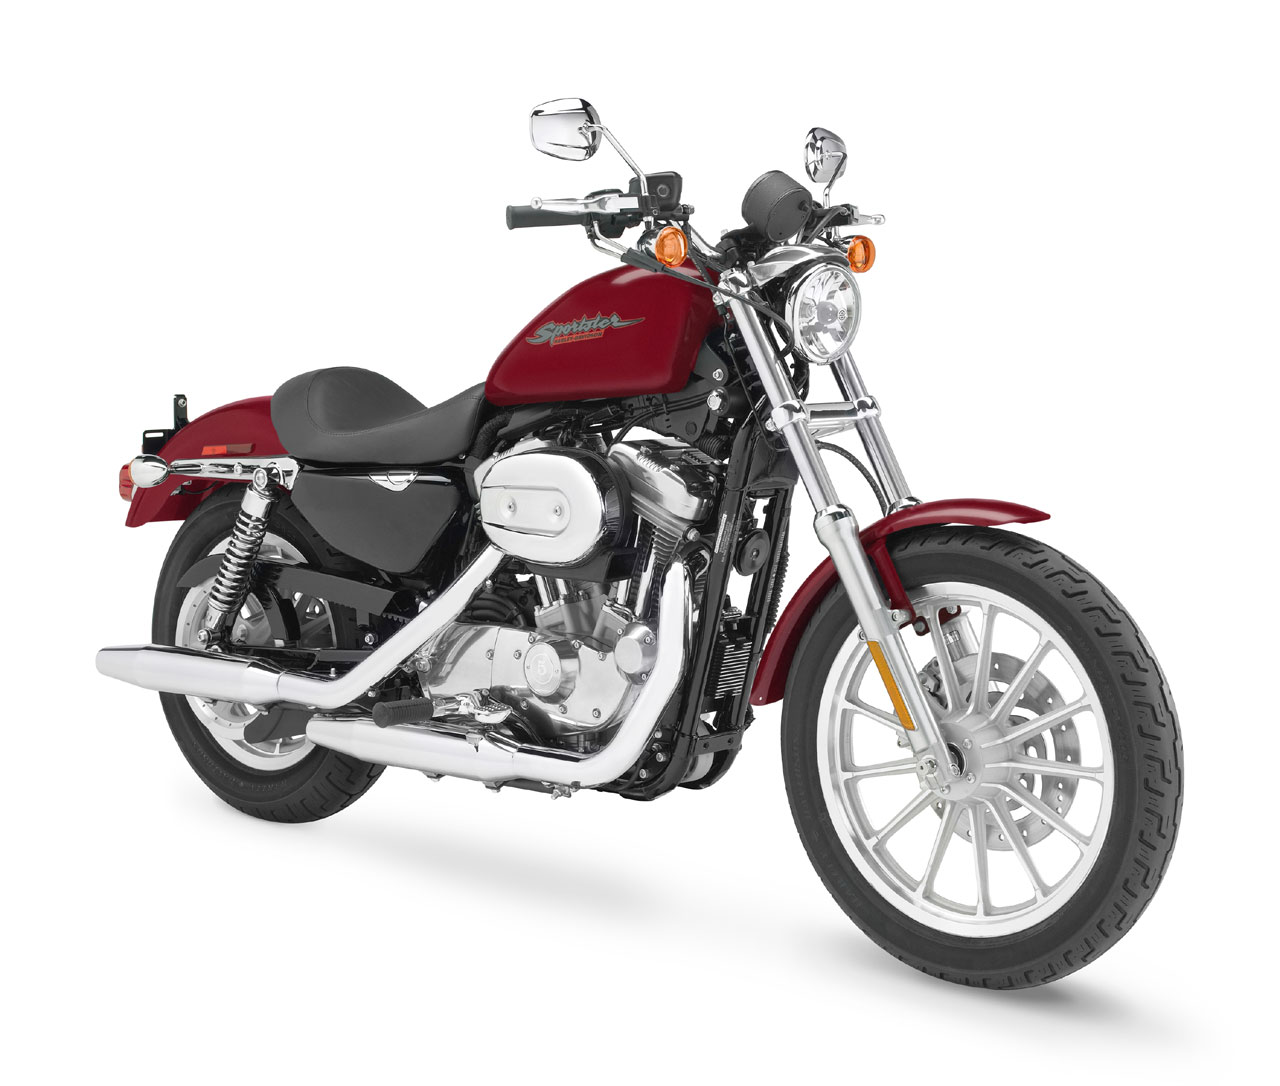 2007 sportster 883l manual how to and user guide instructions u2022 rh taxibermuda co 2007 harley davidson sportster 883 service manual 2007 harley davidson sportster 883 service manual free download